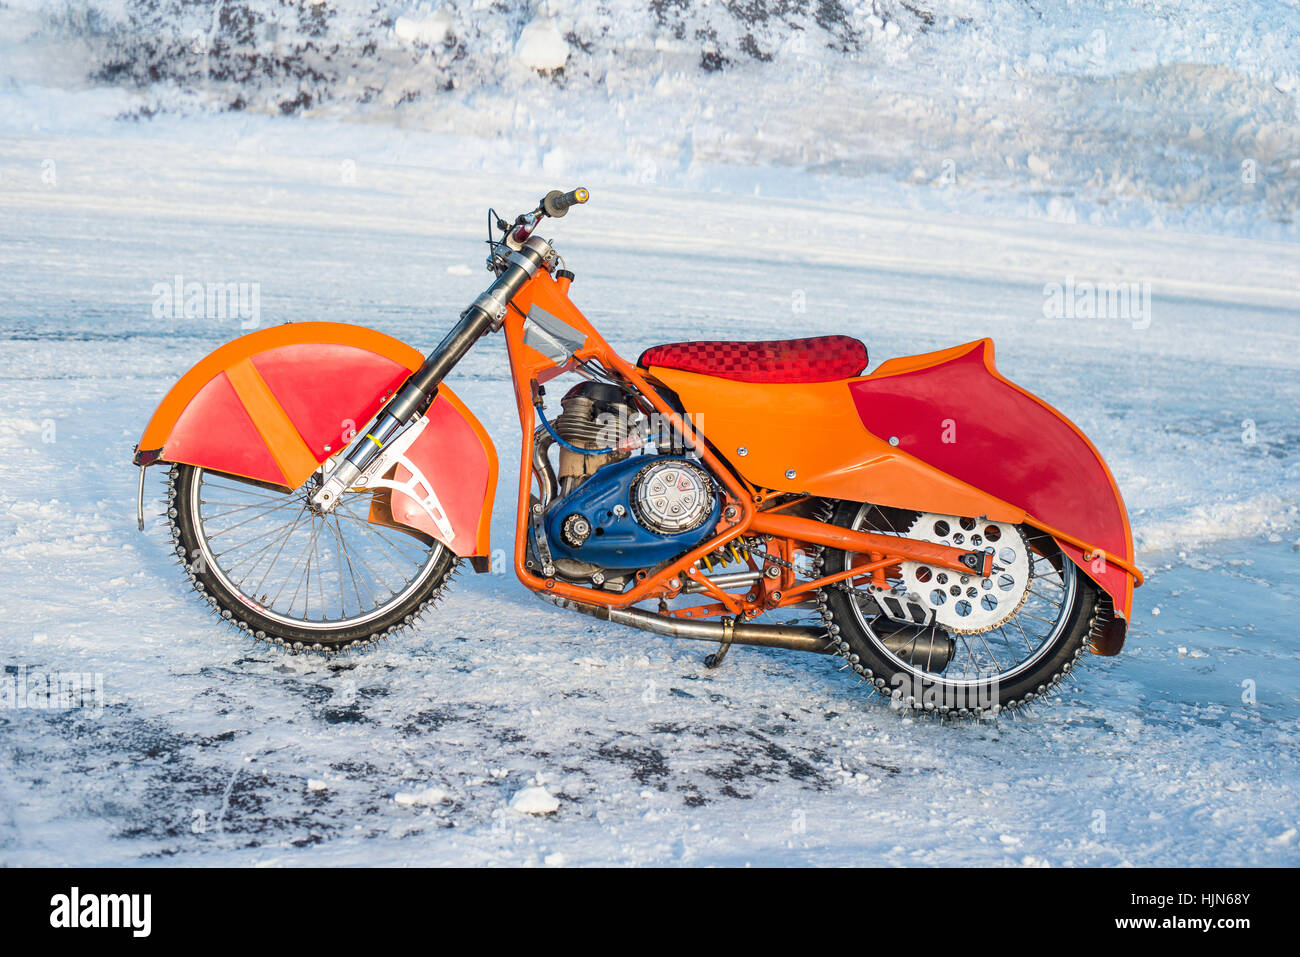 motorcycle for winter Speedway - Stock Image